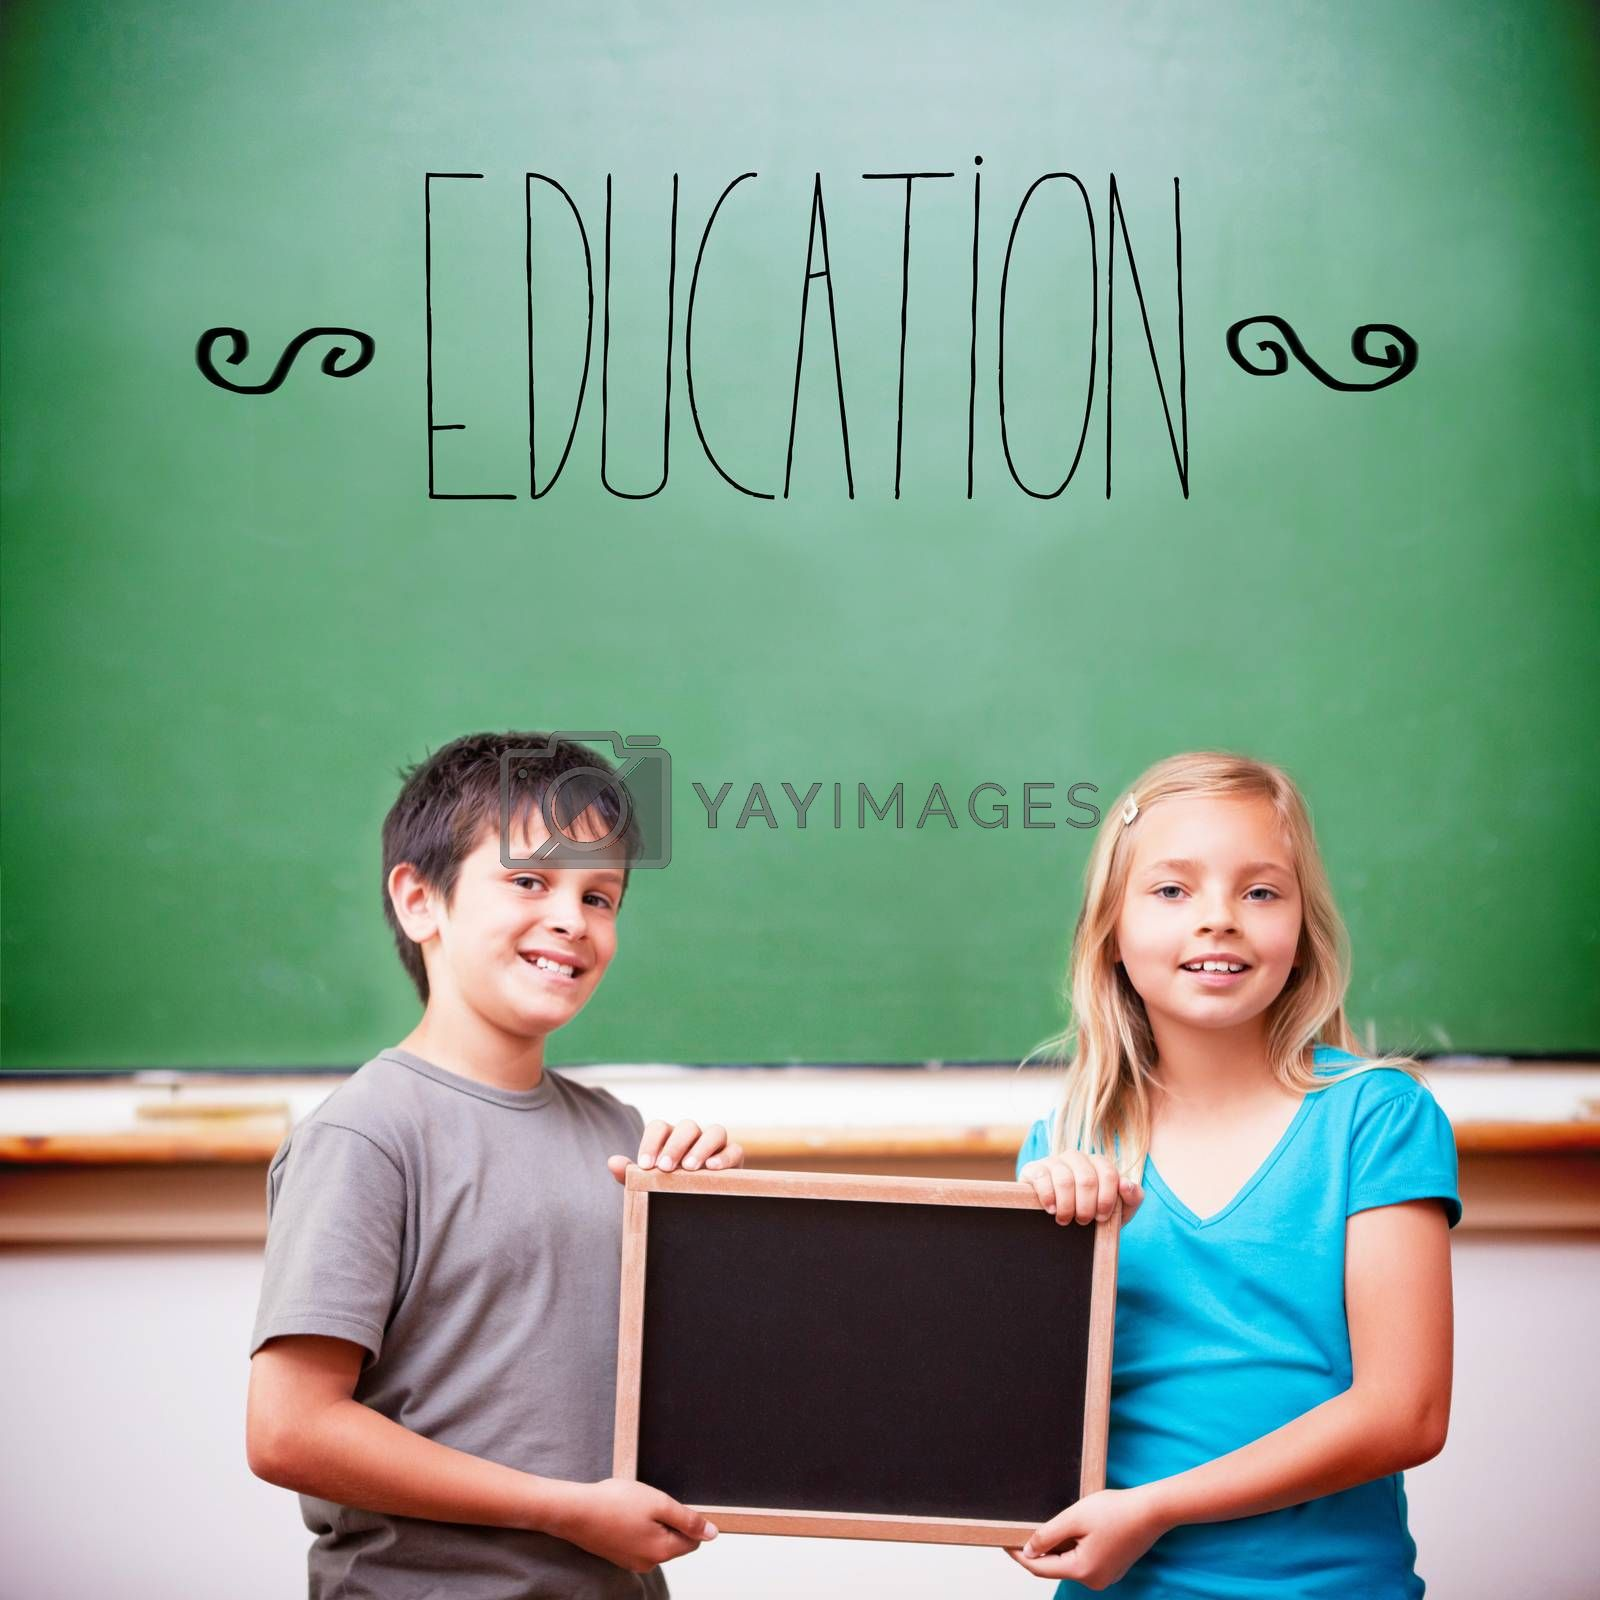 The word education against cute pupils showing chalkboard